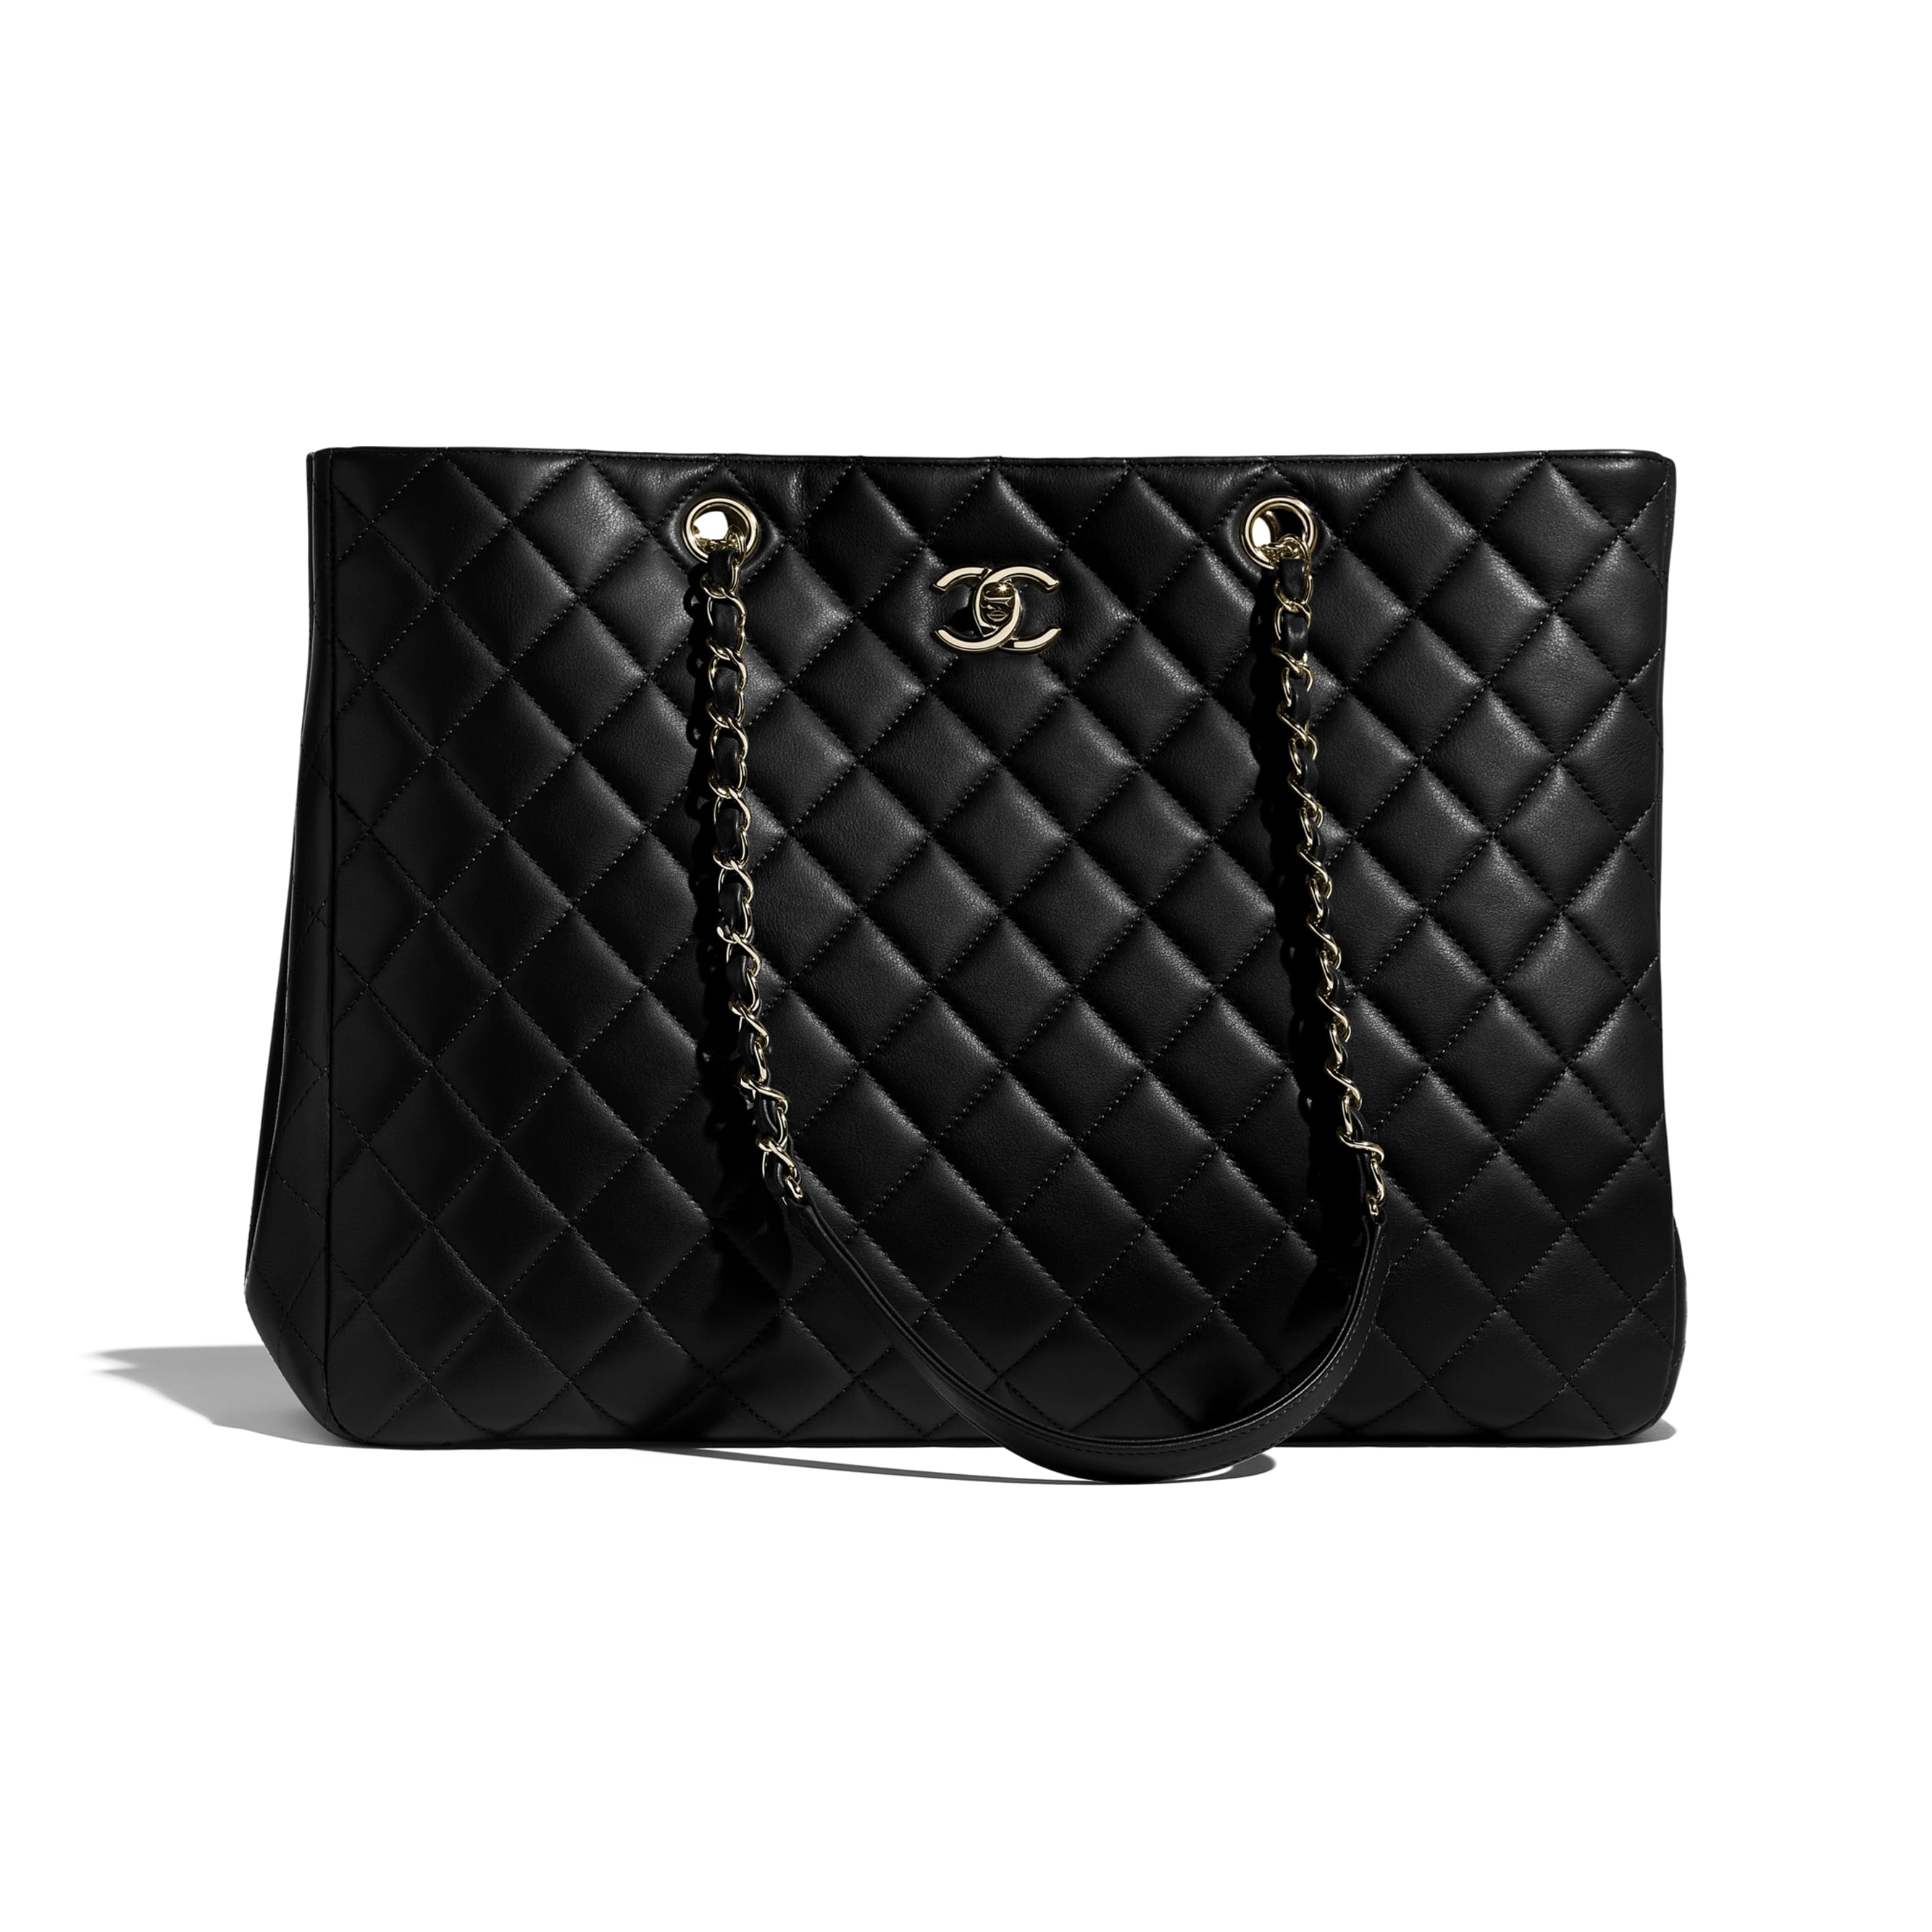 Large Shopping Bag - Black - Calfskin & Gold-Tone Metal - CHANEL - Default view - see standard sized version